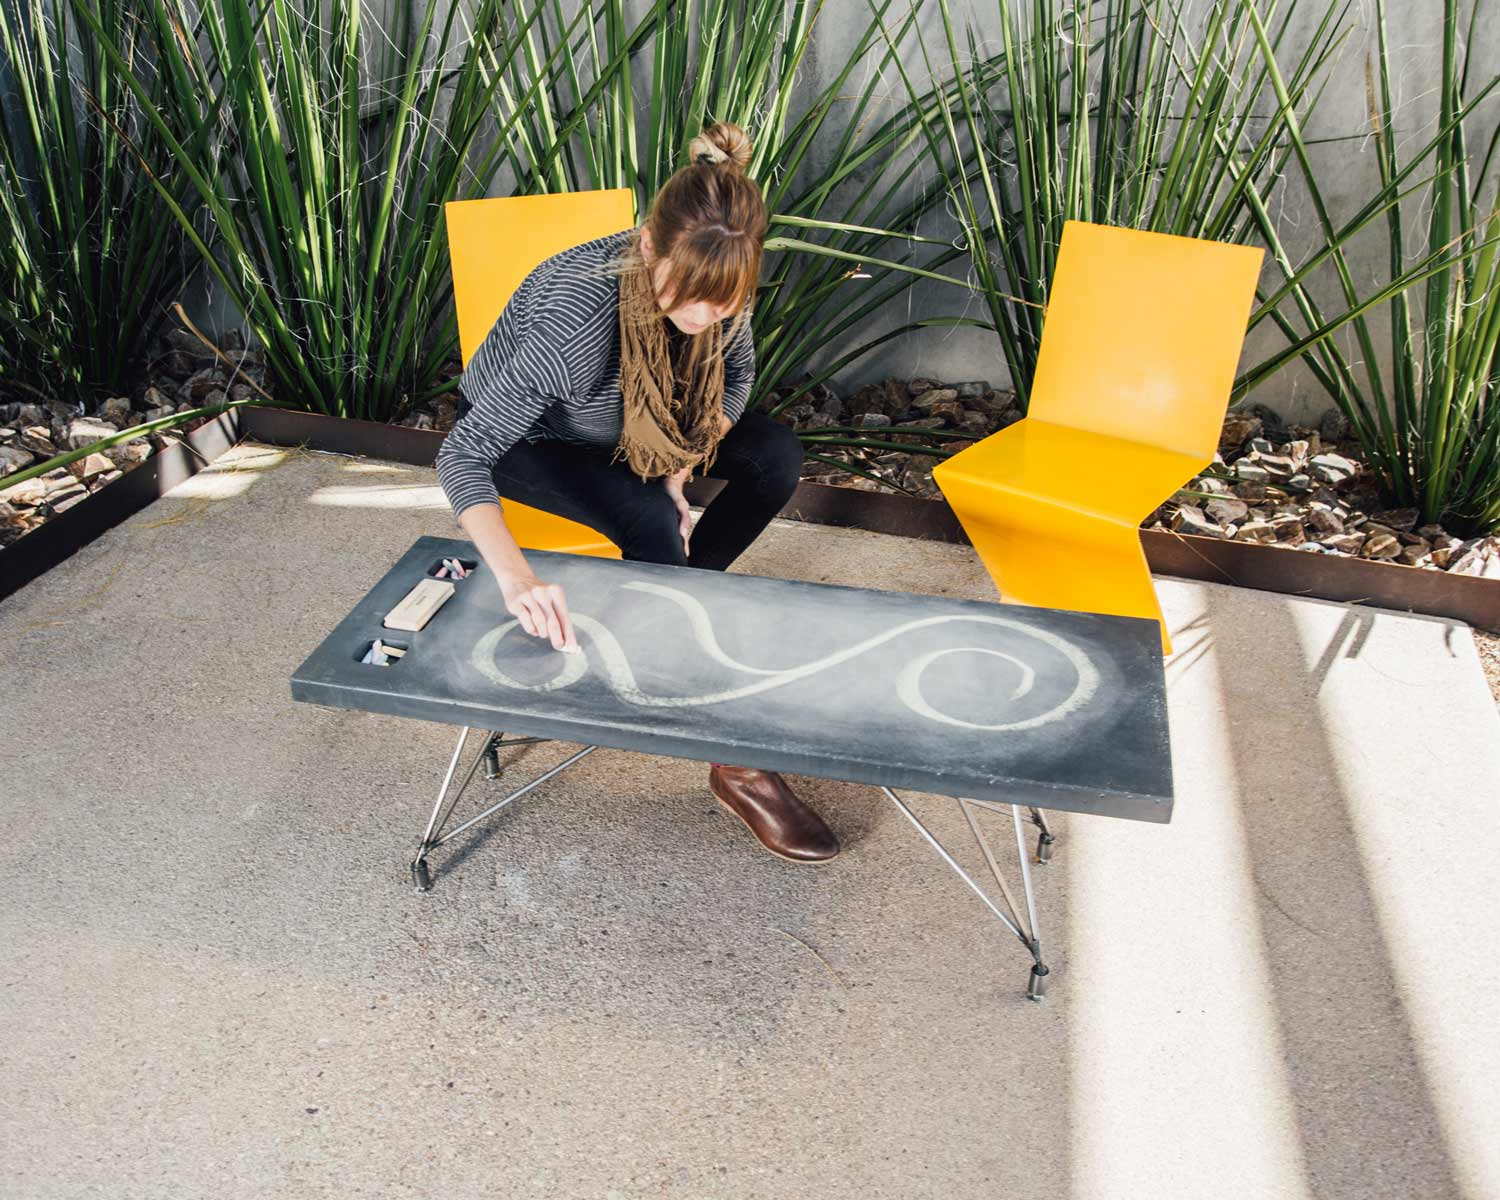 Chalkboard coffee table that you can draw on, made of concrete and custom steel base